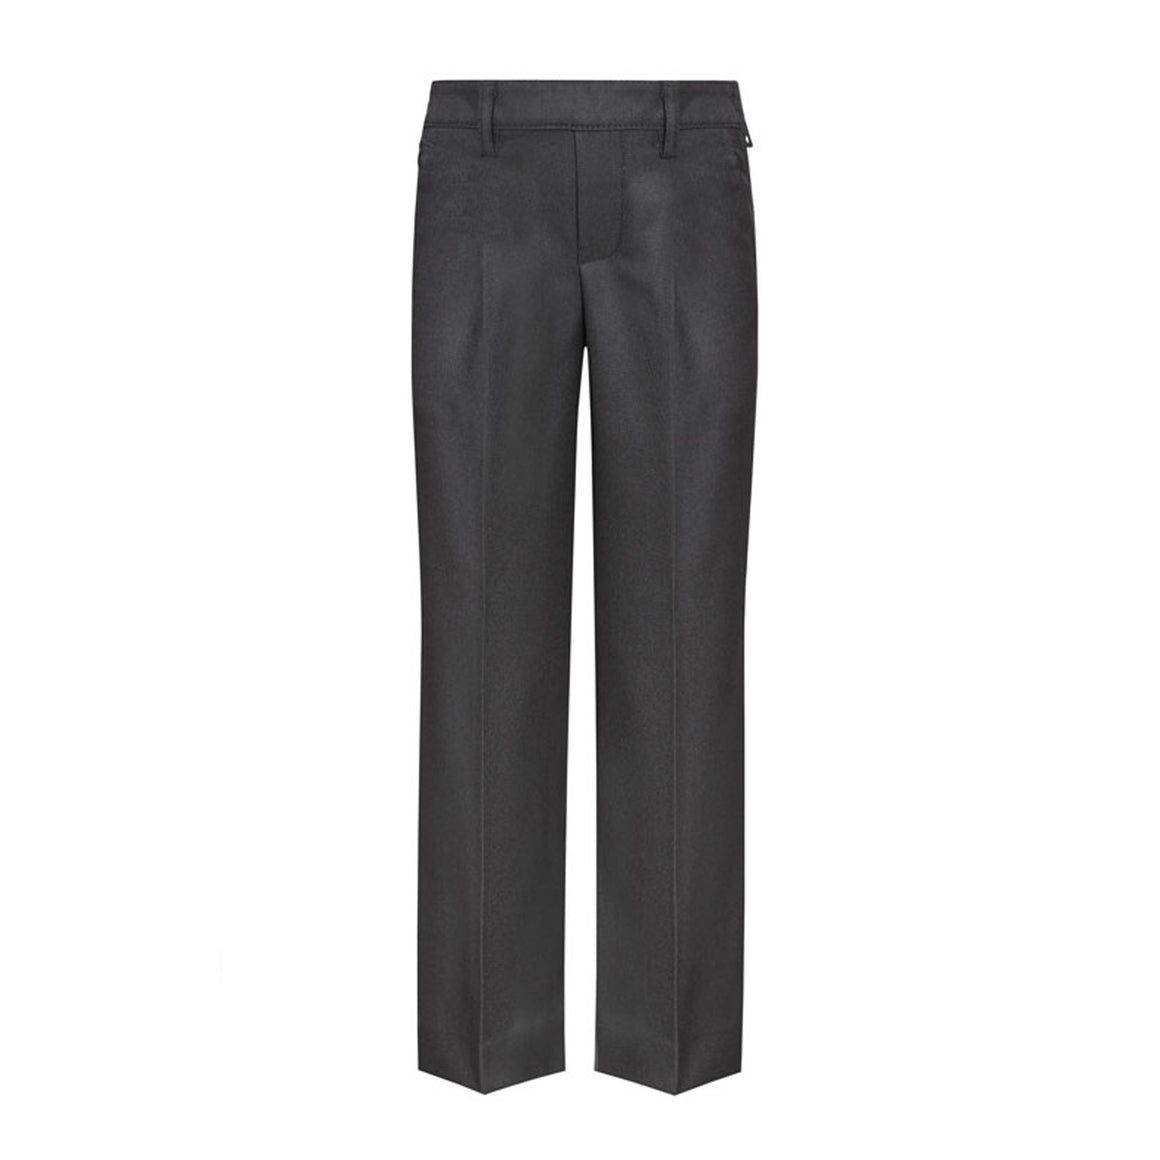 Boys Junior Trousers in Black